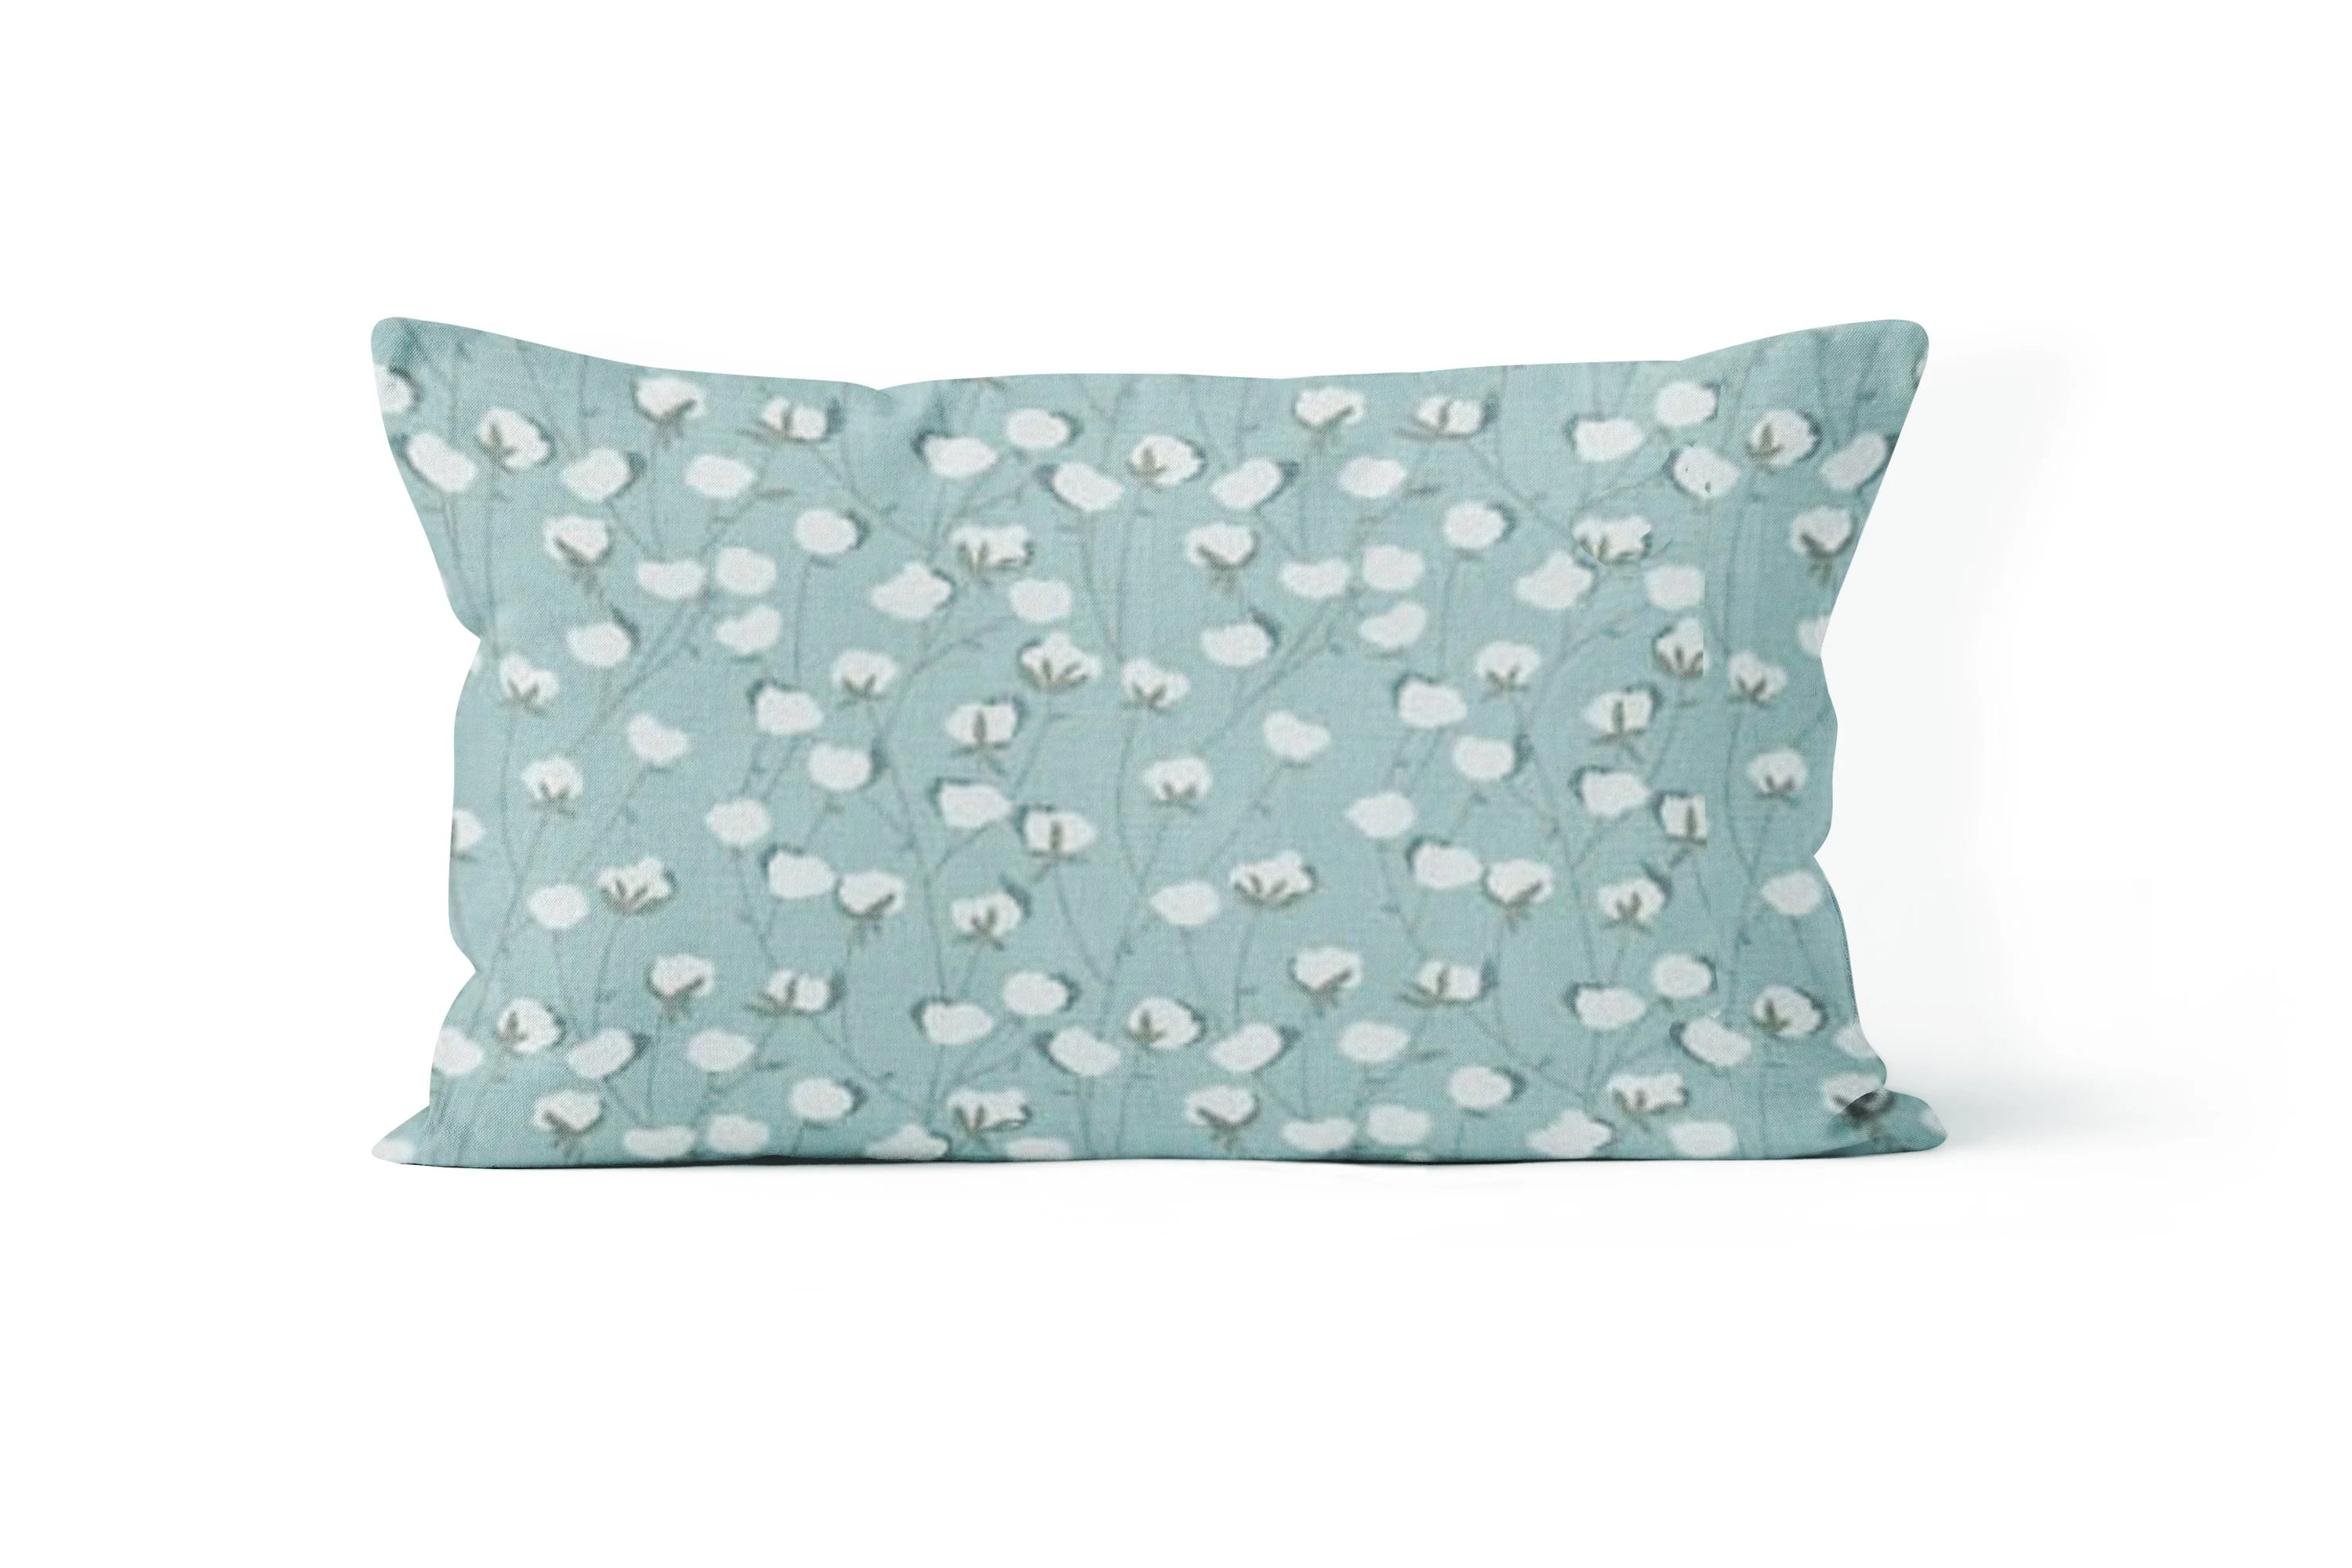 Chair Throw Covers Lumbar Pillow Cover Blue Throw Pillow 12x20 Chair Pillow Cover